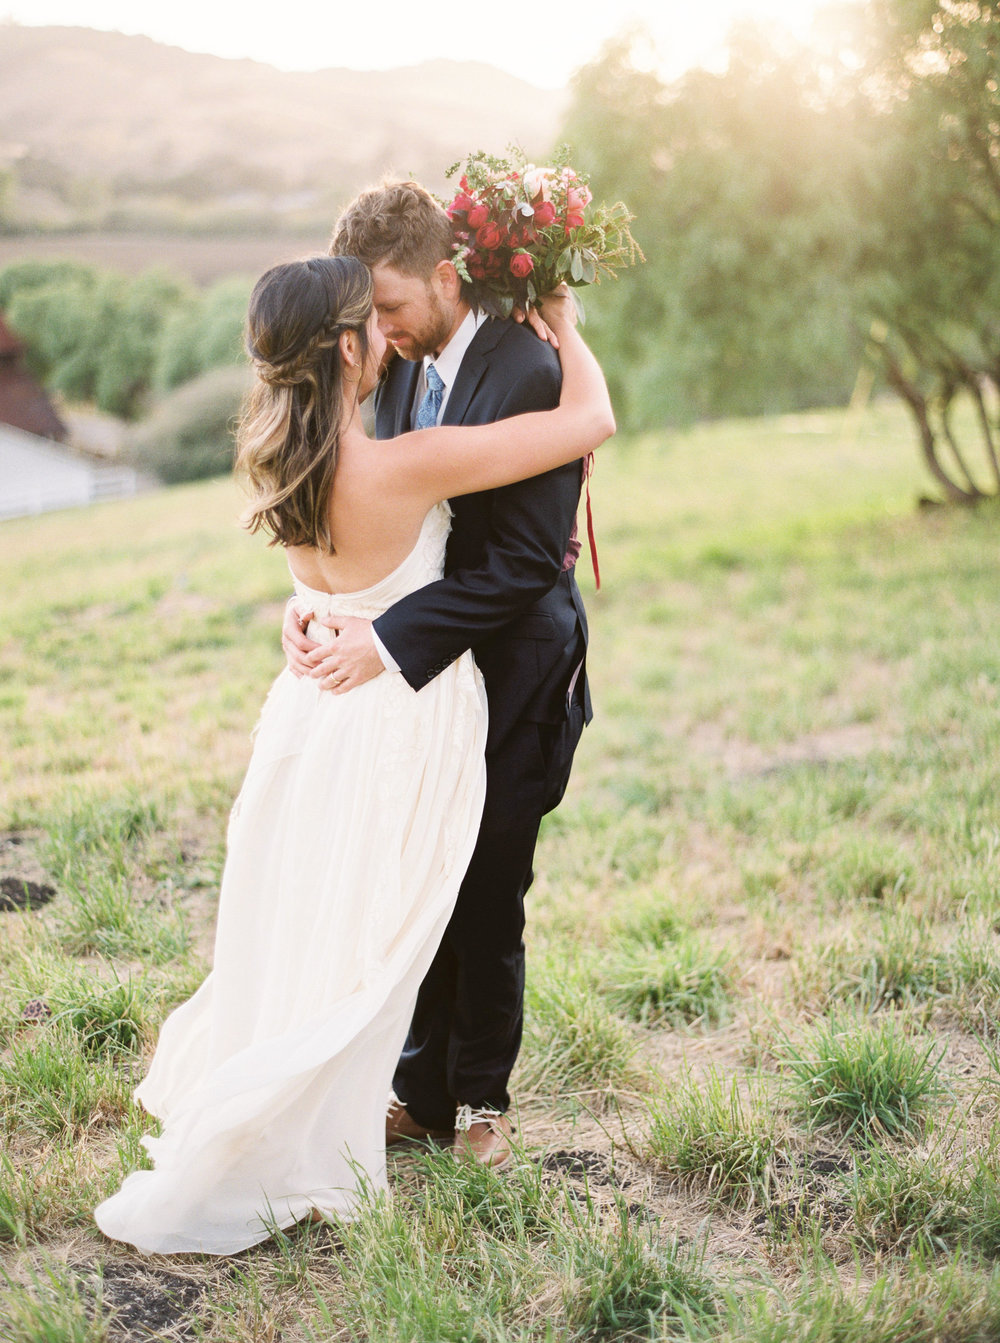 WilderFloralCo_LateSummerHarvest_GreengateRanch_BrideAndGroomAtSunset